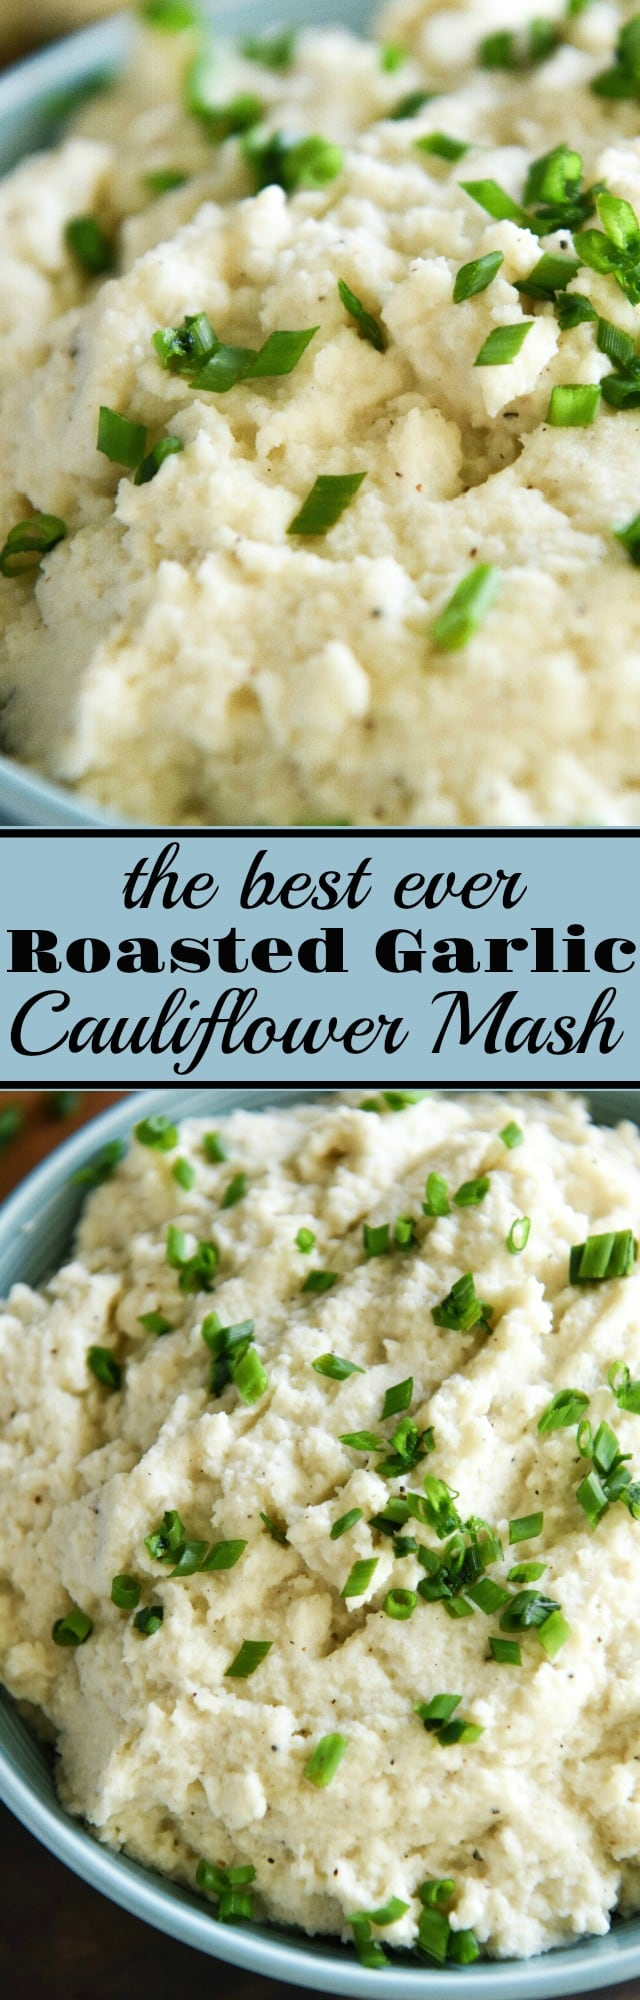 Roasted Garlic Cauliflower Mash: this is the BEST cauli mash, ever. It took me years to finally get this recipe perfect! It is full flavored, perfectly textured, with one major secret ingredient!